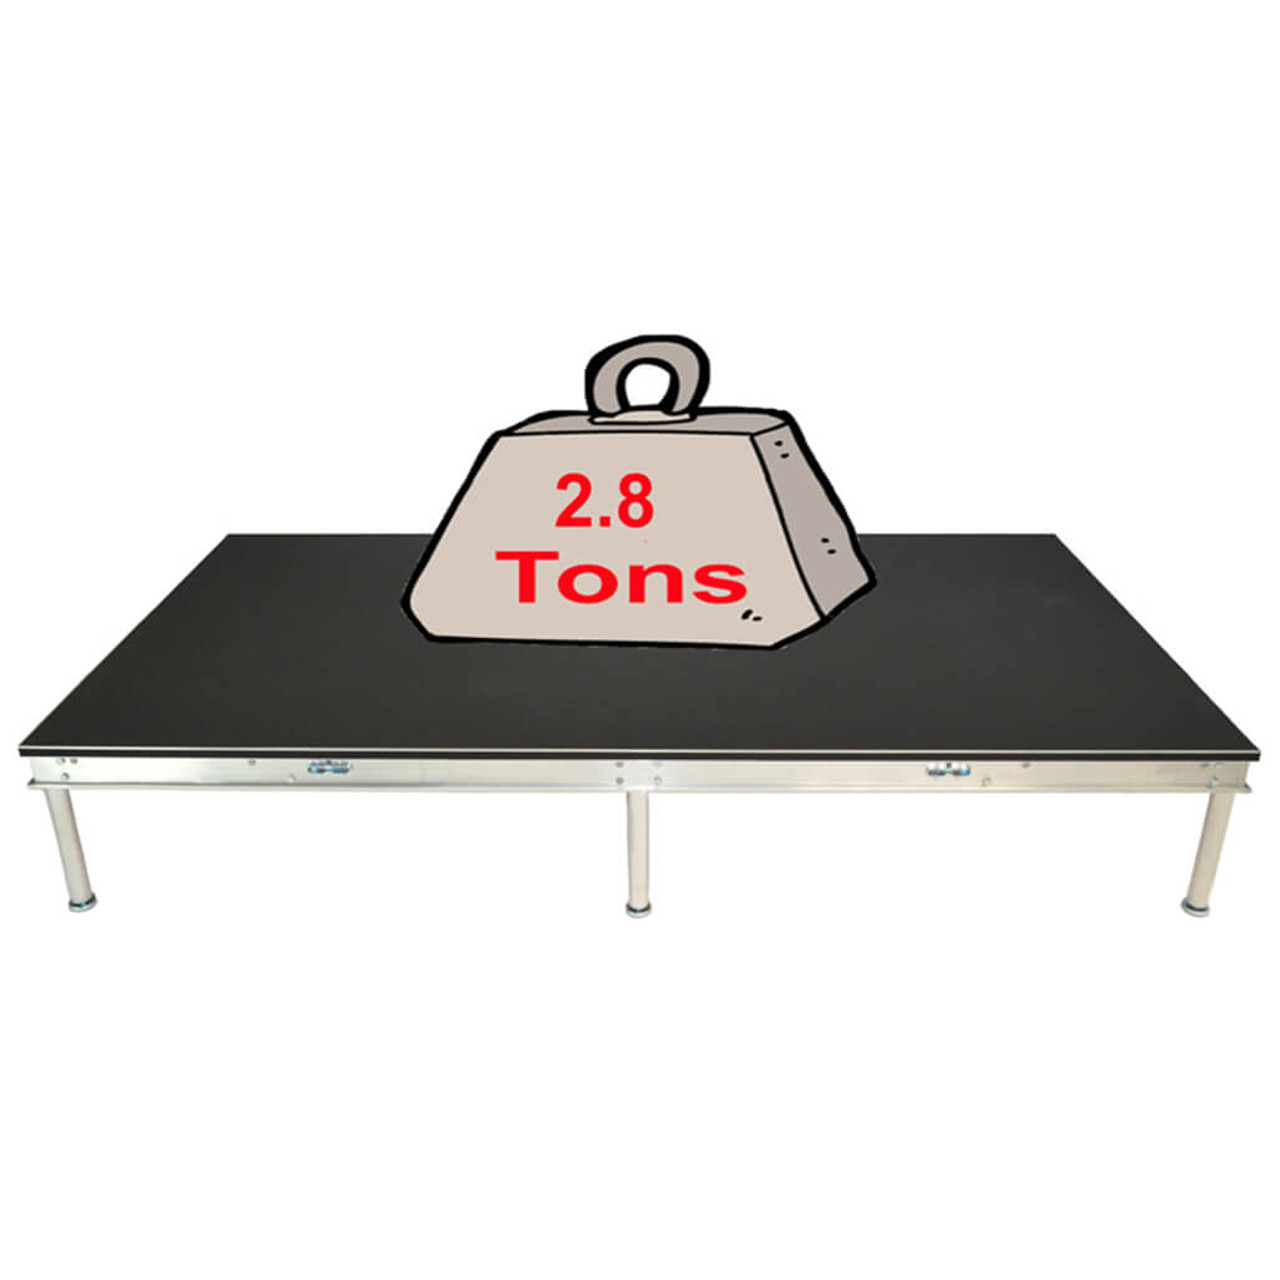 Top rated Quik Stage 12' x 24' High Portable Stage Package with Black Polyvinyl Non-Skid Surface. Additional Heights and Surfaces Available - Holds 2.8 tons per 4 x 8 when spread out evenly